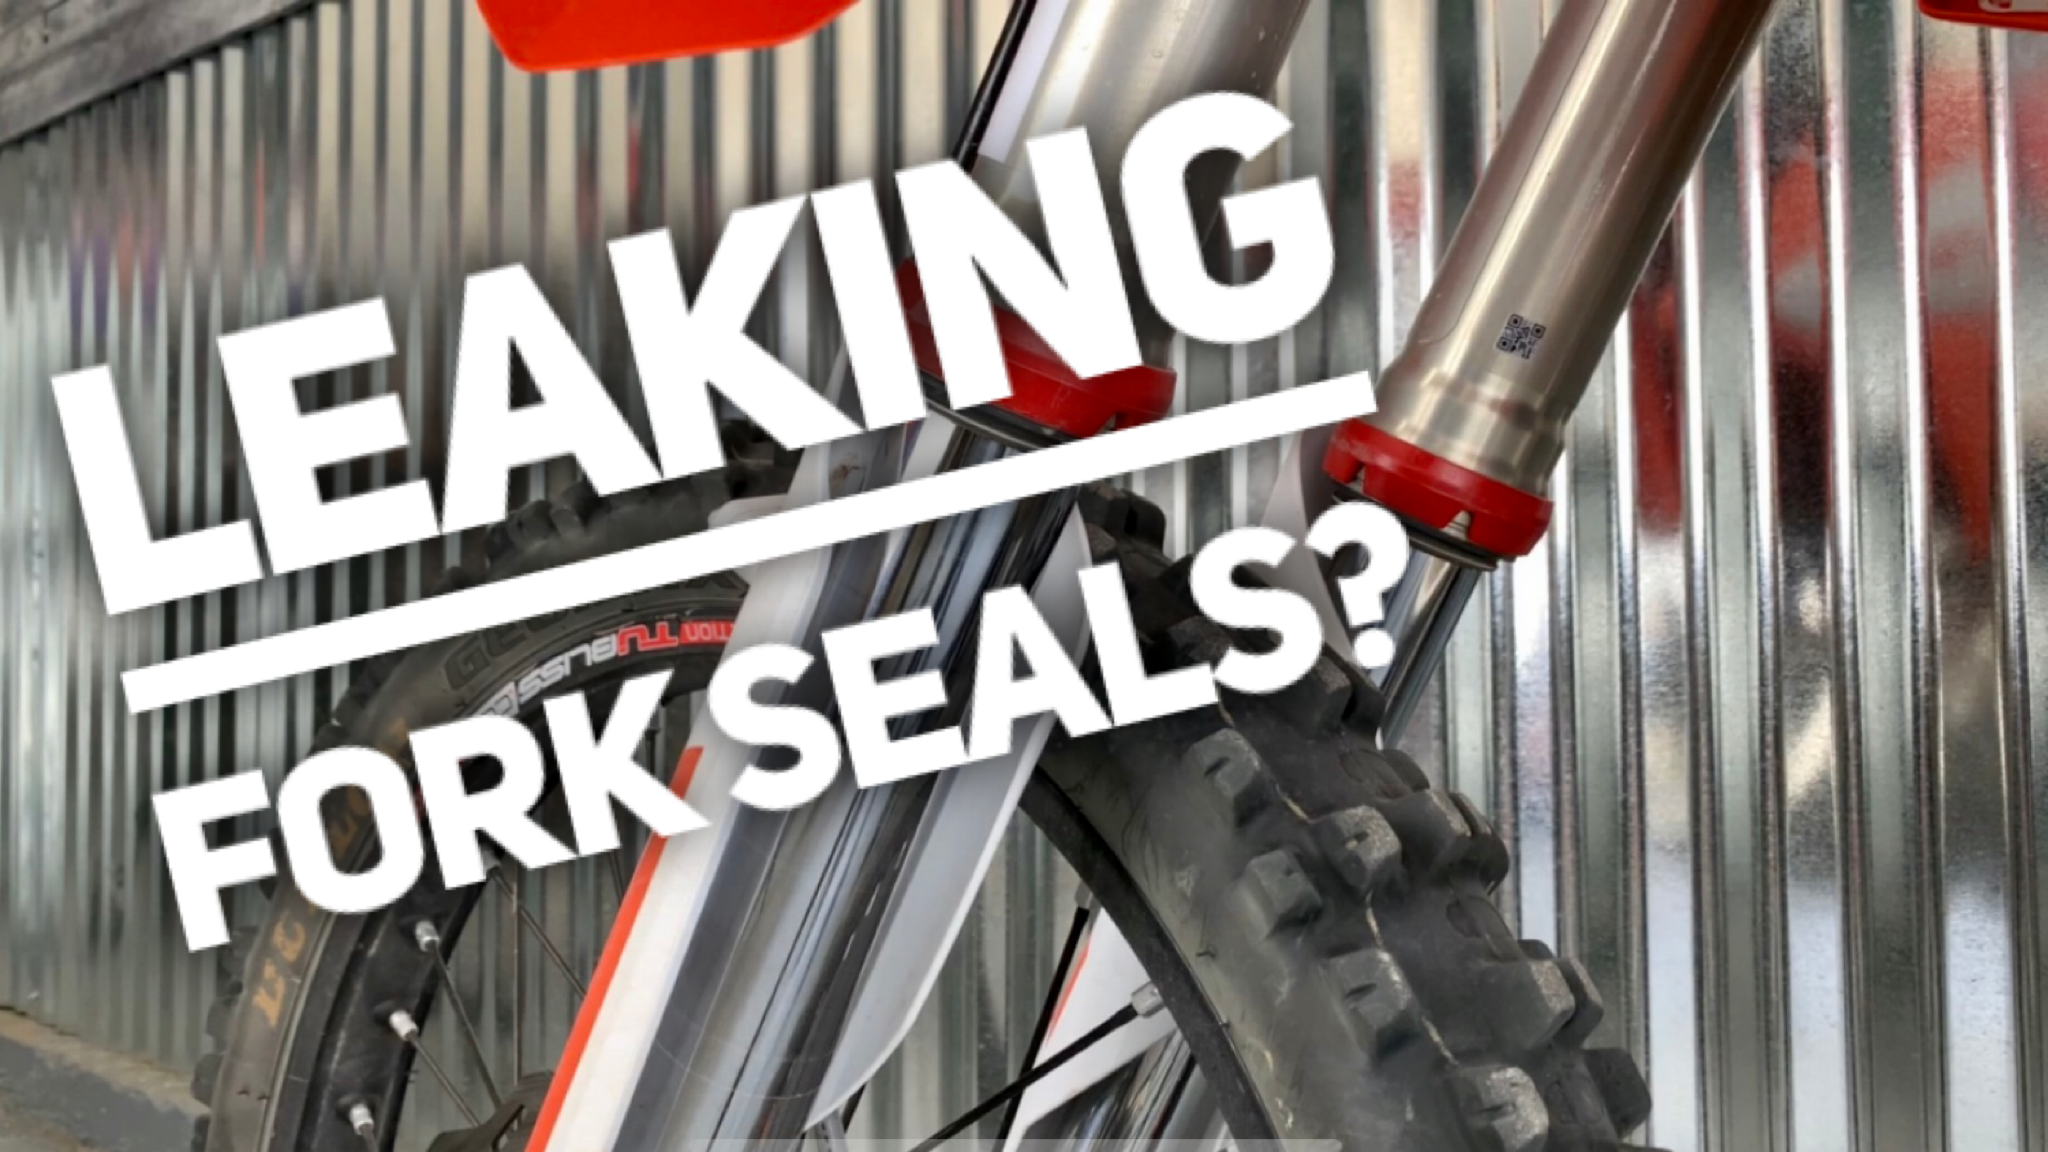 How to fix leaking fork seals on your Dirt Bike